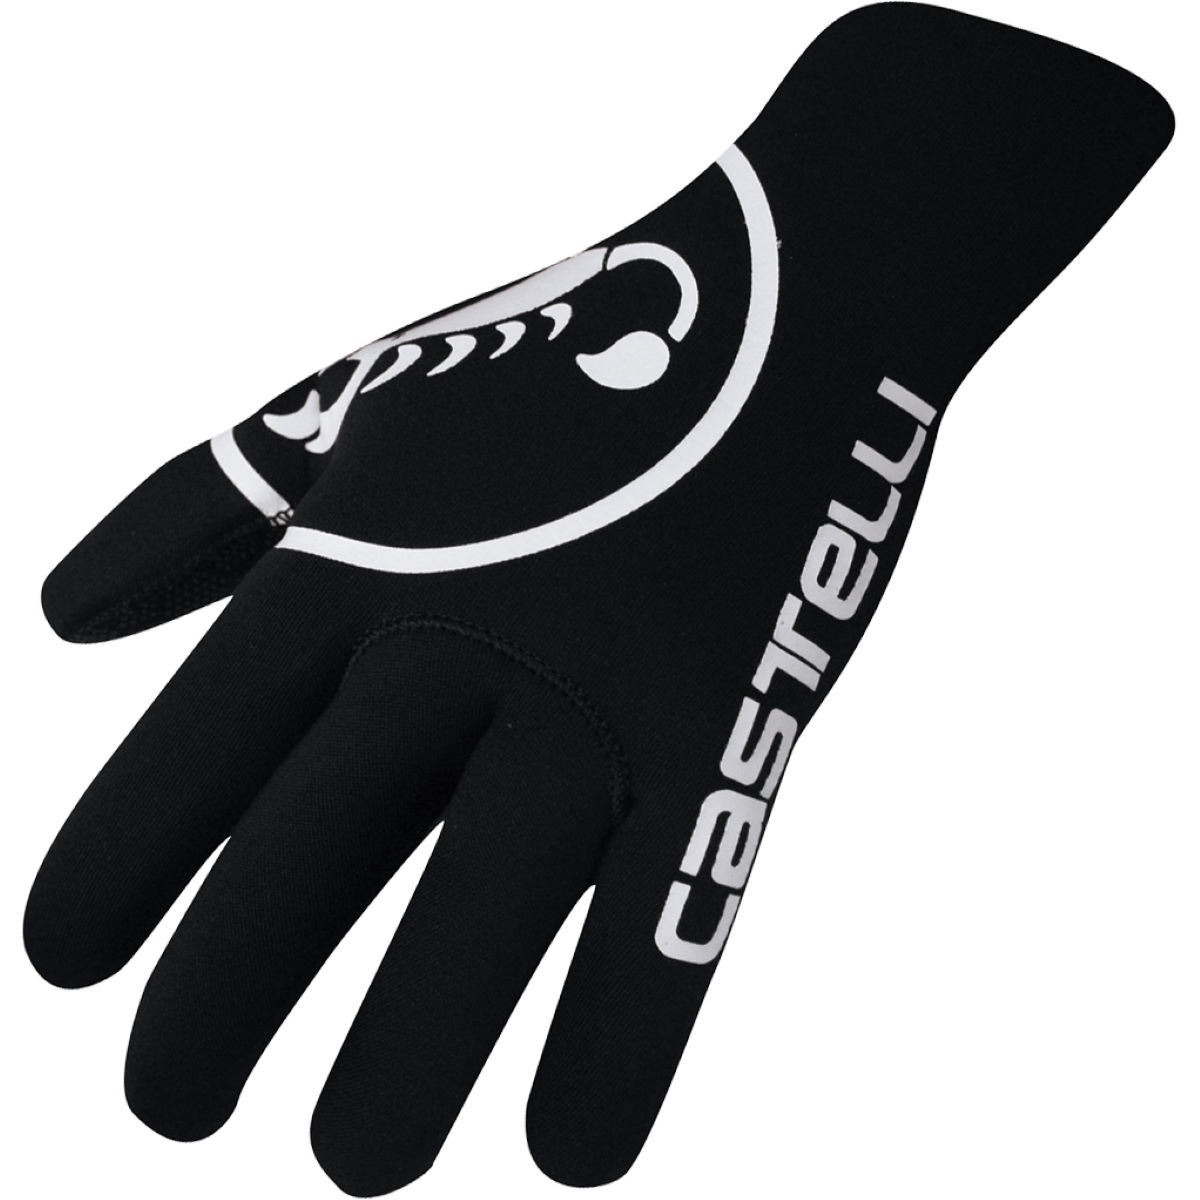 Castelli Diluvio Winter Cycling Gloves